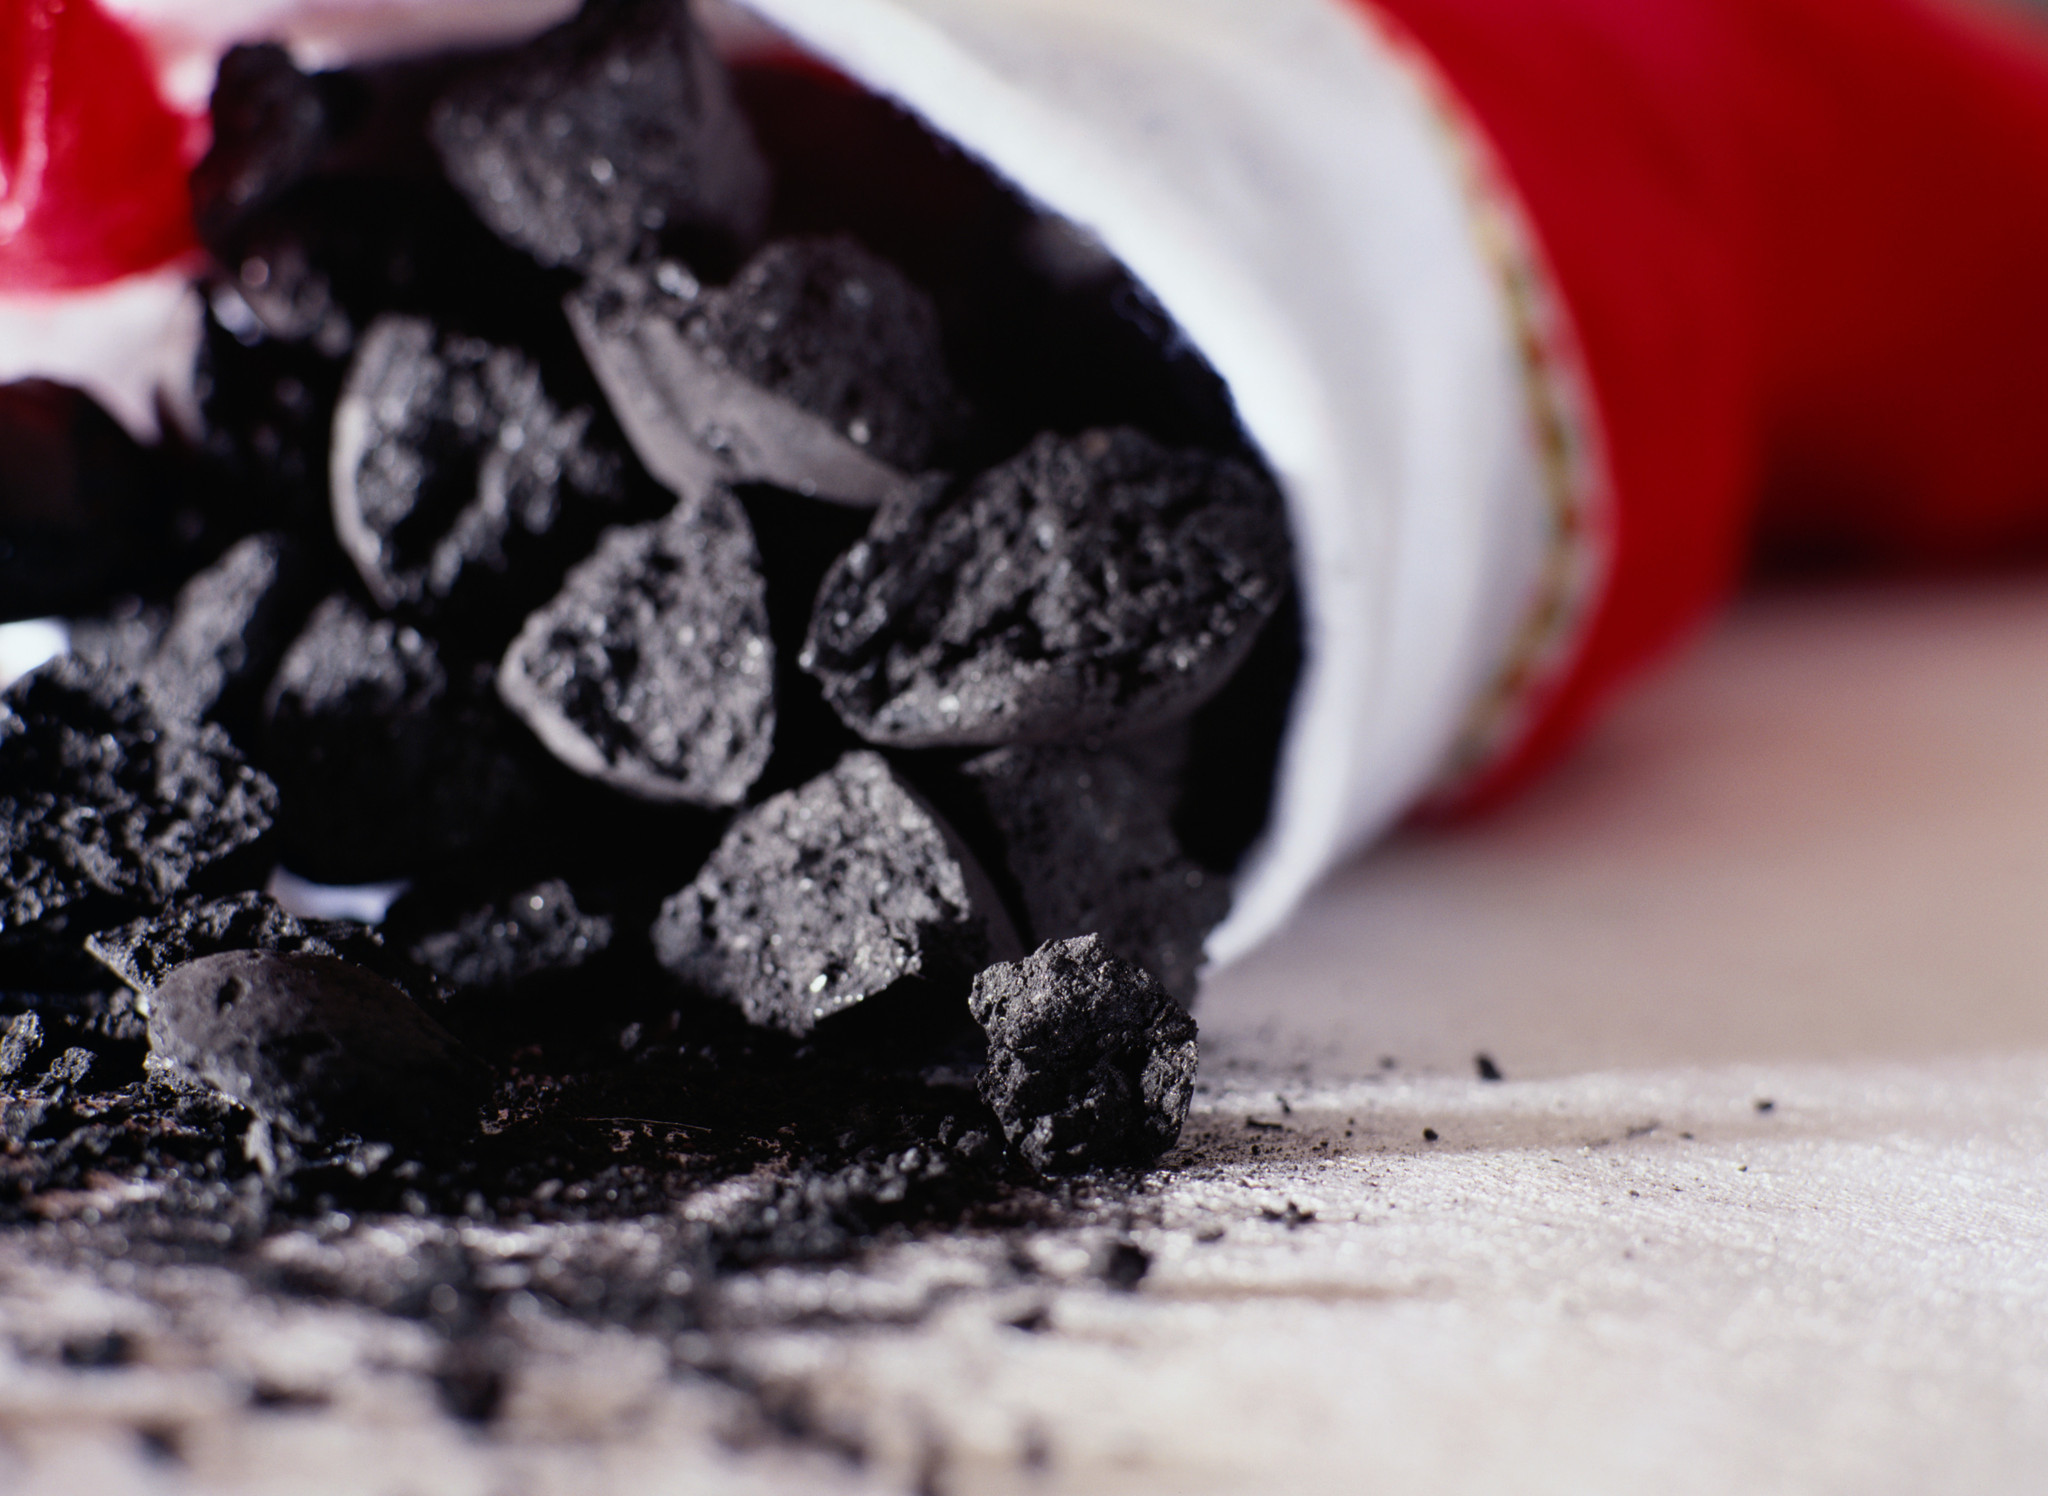 Lump of coal for Christmas? I\'ll take two - Hartford Courant